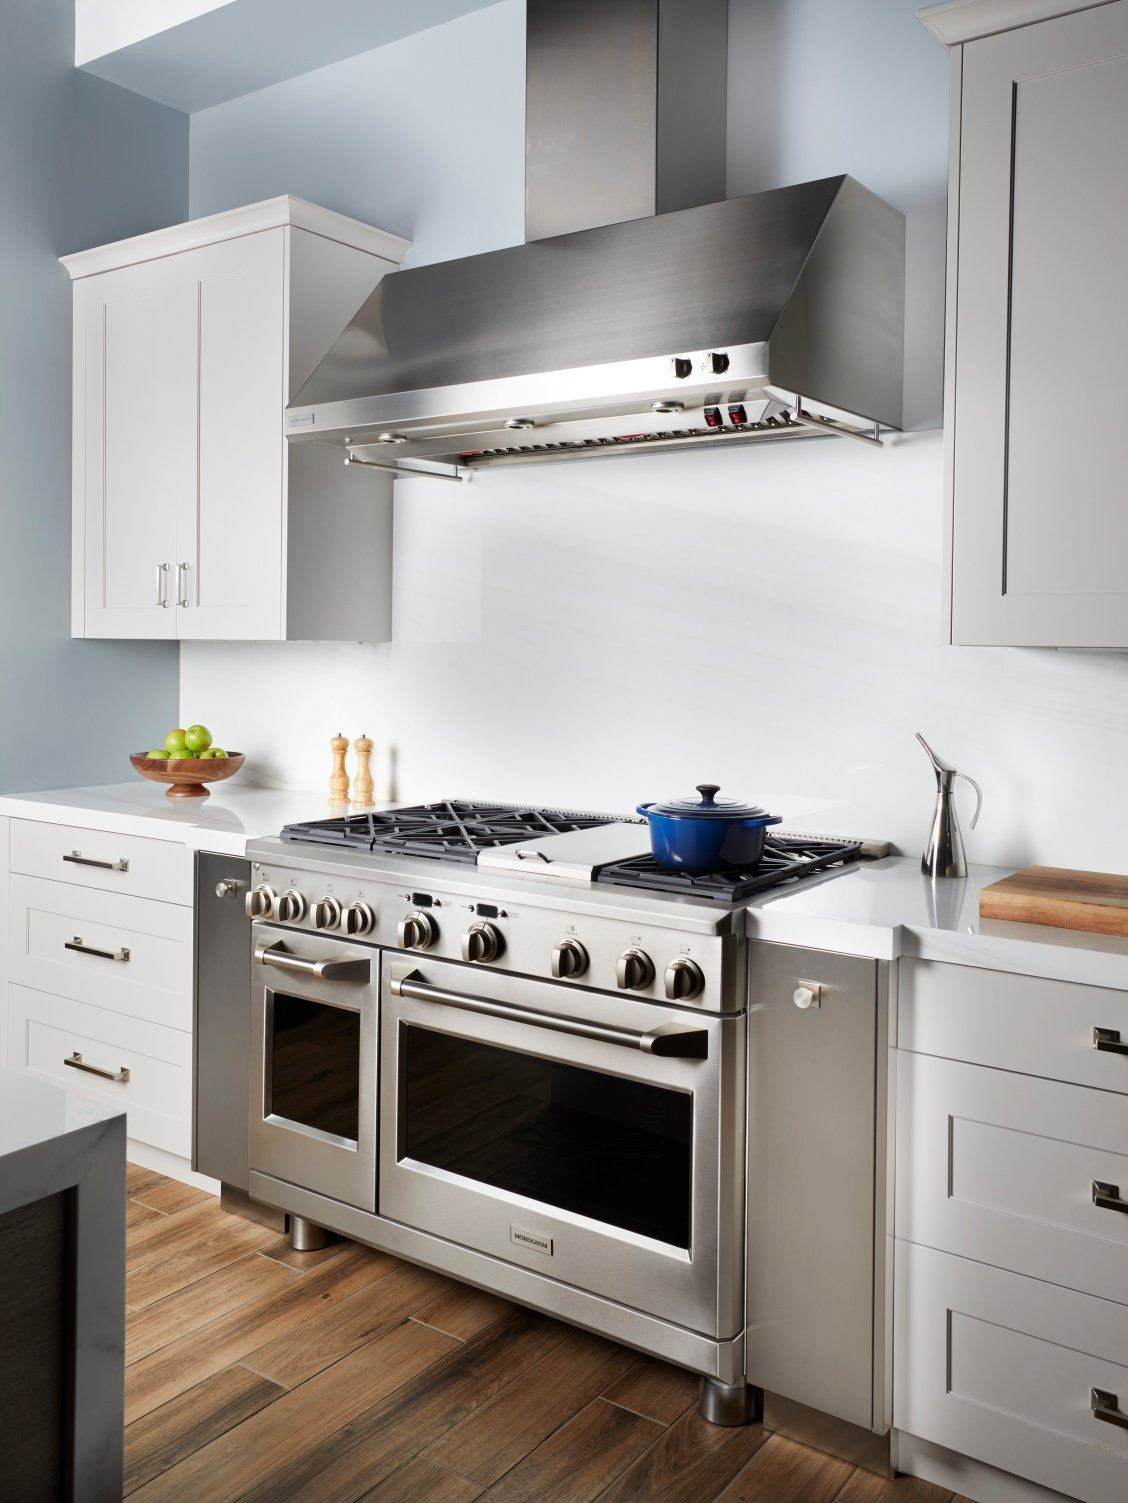 Years Of Intensive Research And Development Make Monogram Ranges The Choice For Restaurant Caliber Cooking In The Ho Luxury Kitchen Monogram Appliances Kitchen